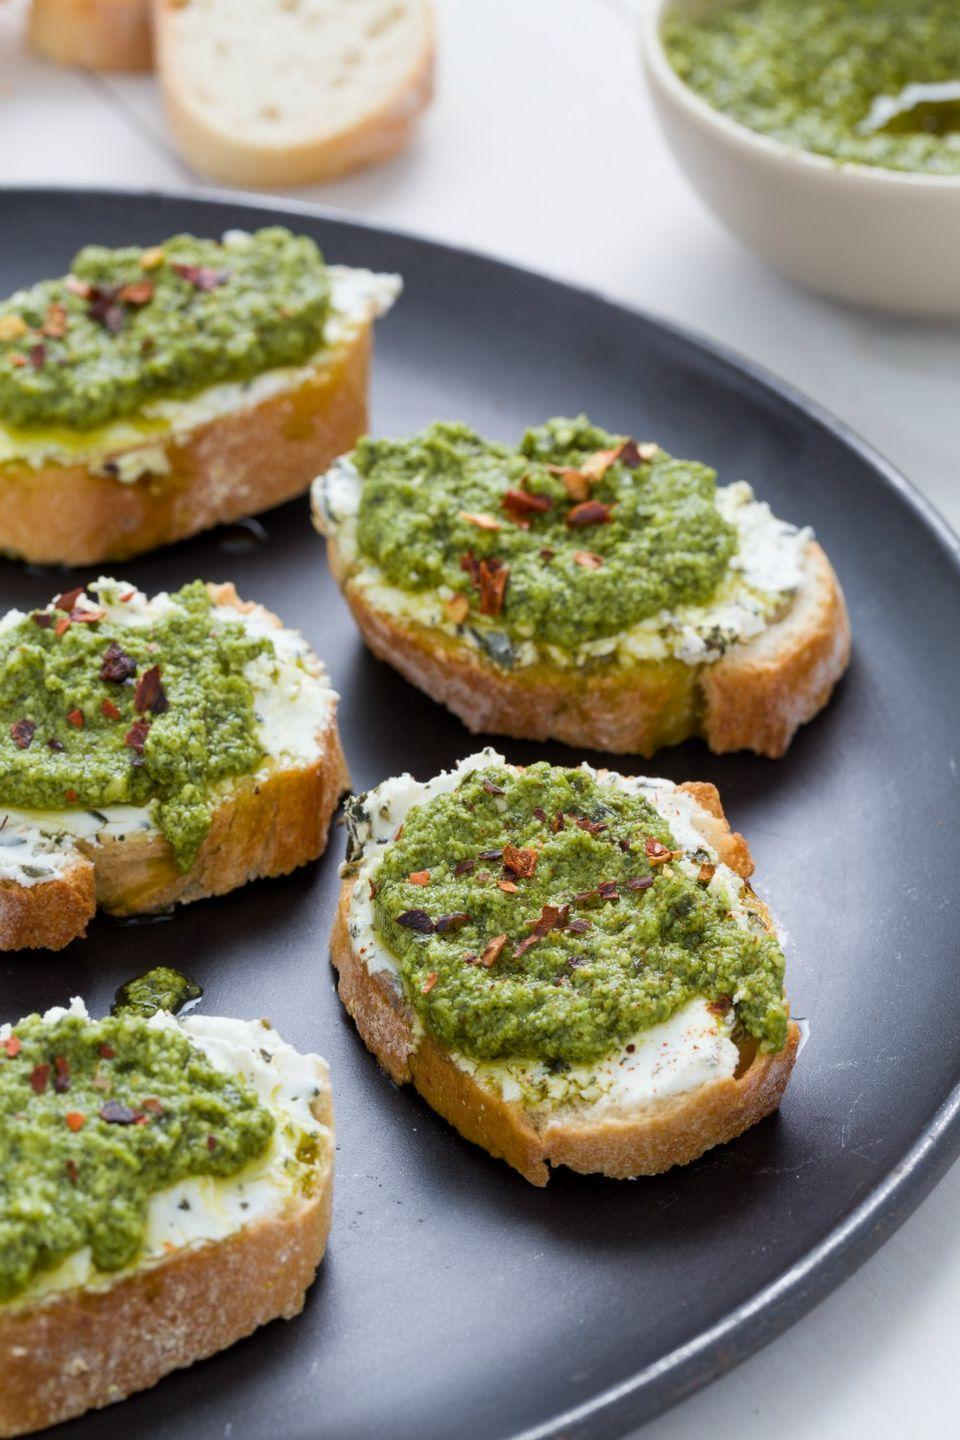 "<p>You might even like pesto better on bread than you do on pasta.</p><p>Get the recipe from <a href=""https://www.delish.com/holiday-recipes/new-years/g1562/crostini/?slide=10"" rel=""nofollow noopener"" target=""_blank"" data-ylk=""slk:Delish"" class=""link rapid-noclick-resp"">Delish</a>.</p>"